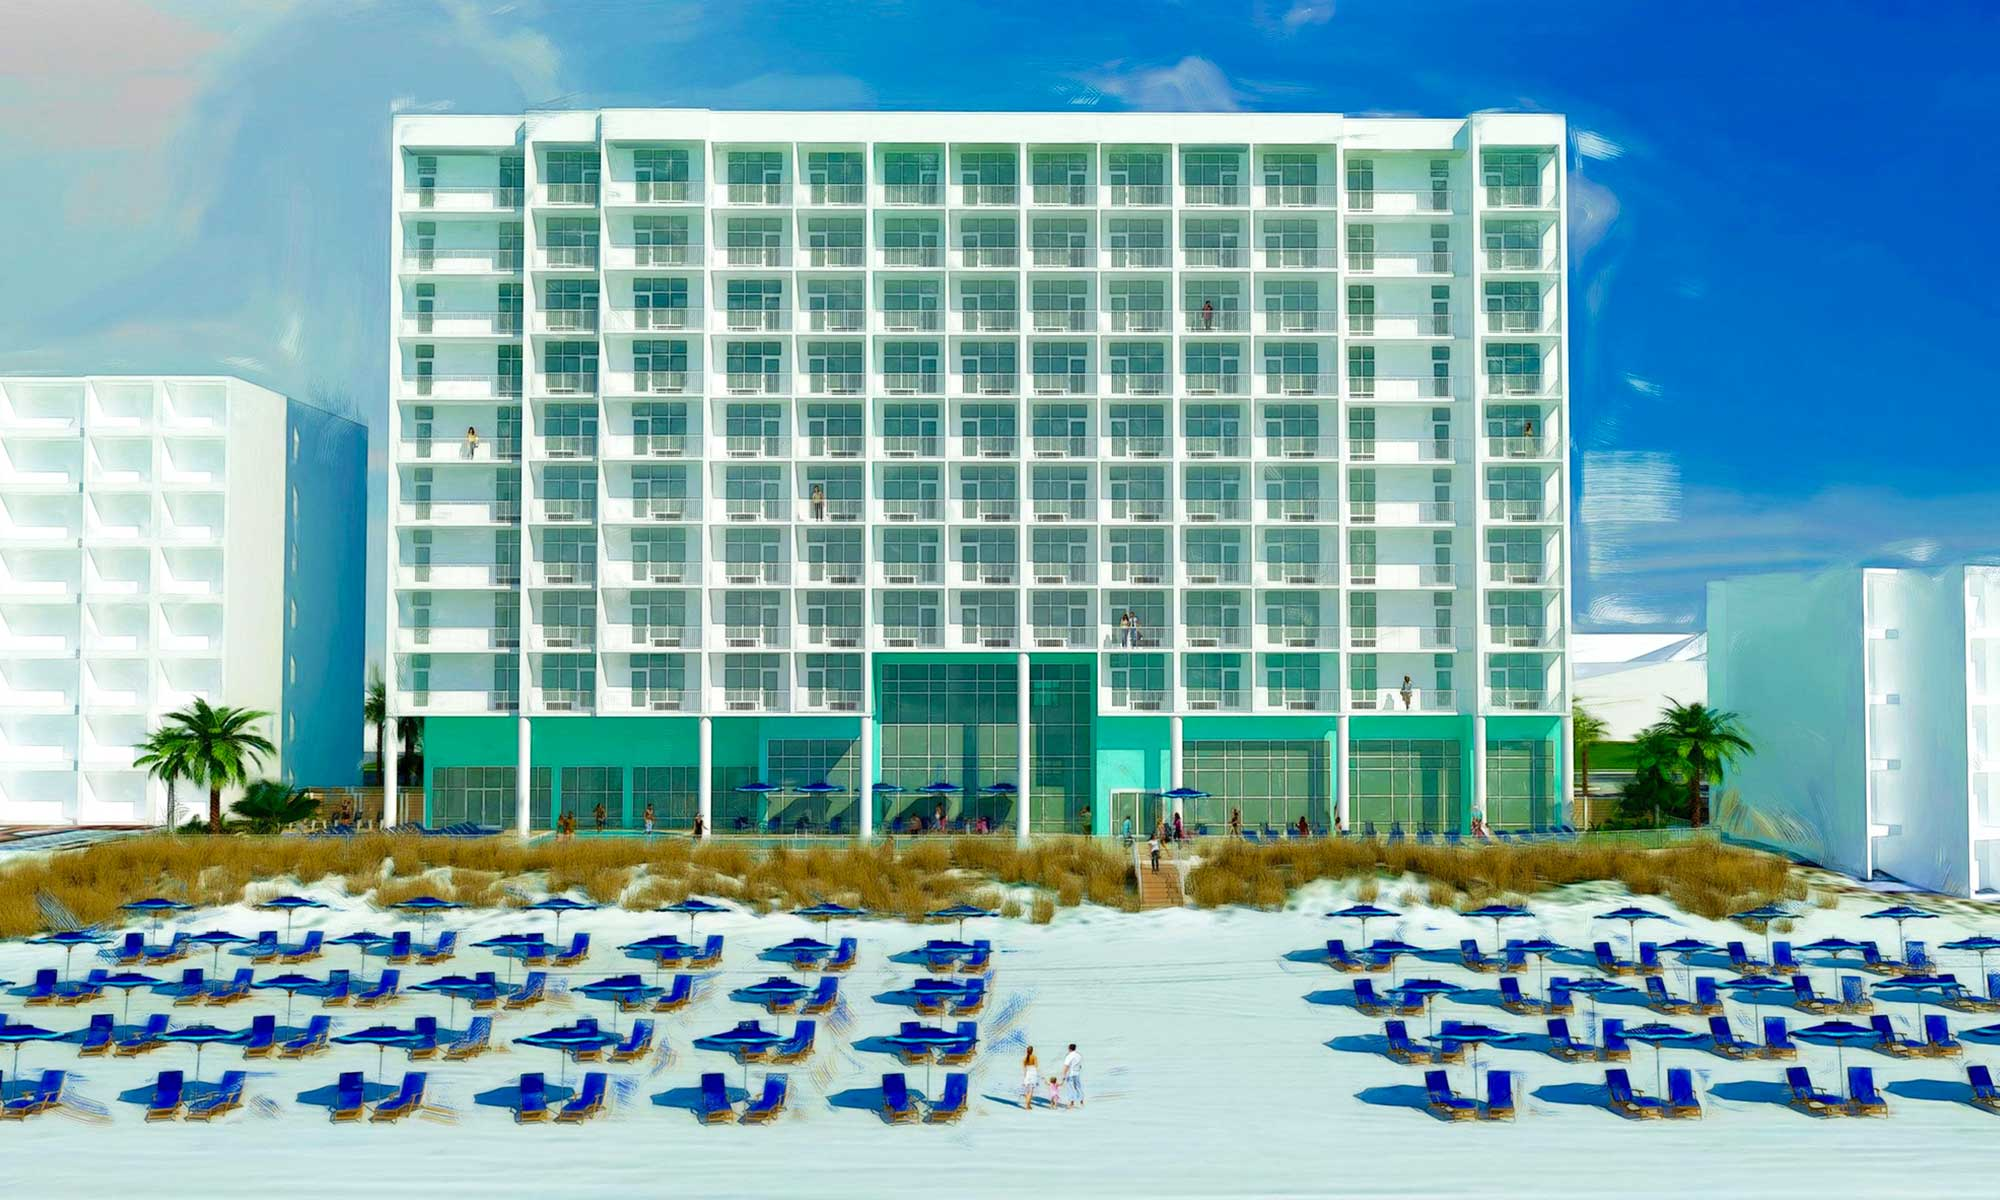 Innisfree hotels topping out hampton inn suites panama city beach - The hive inn hotel ...